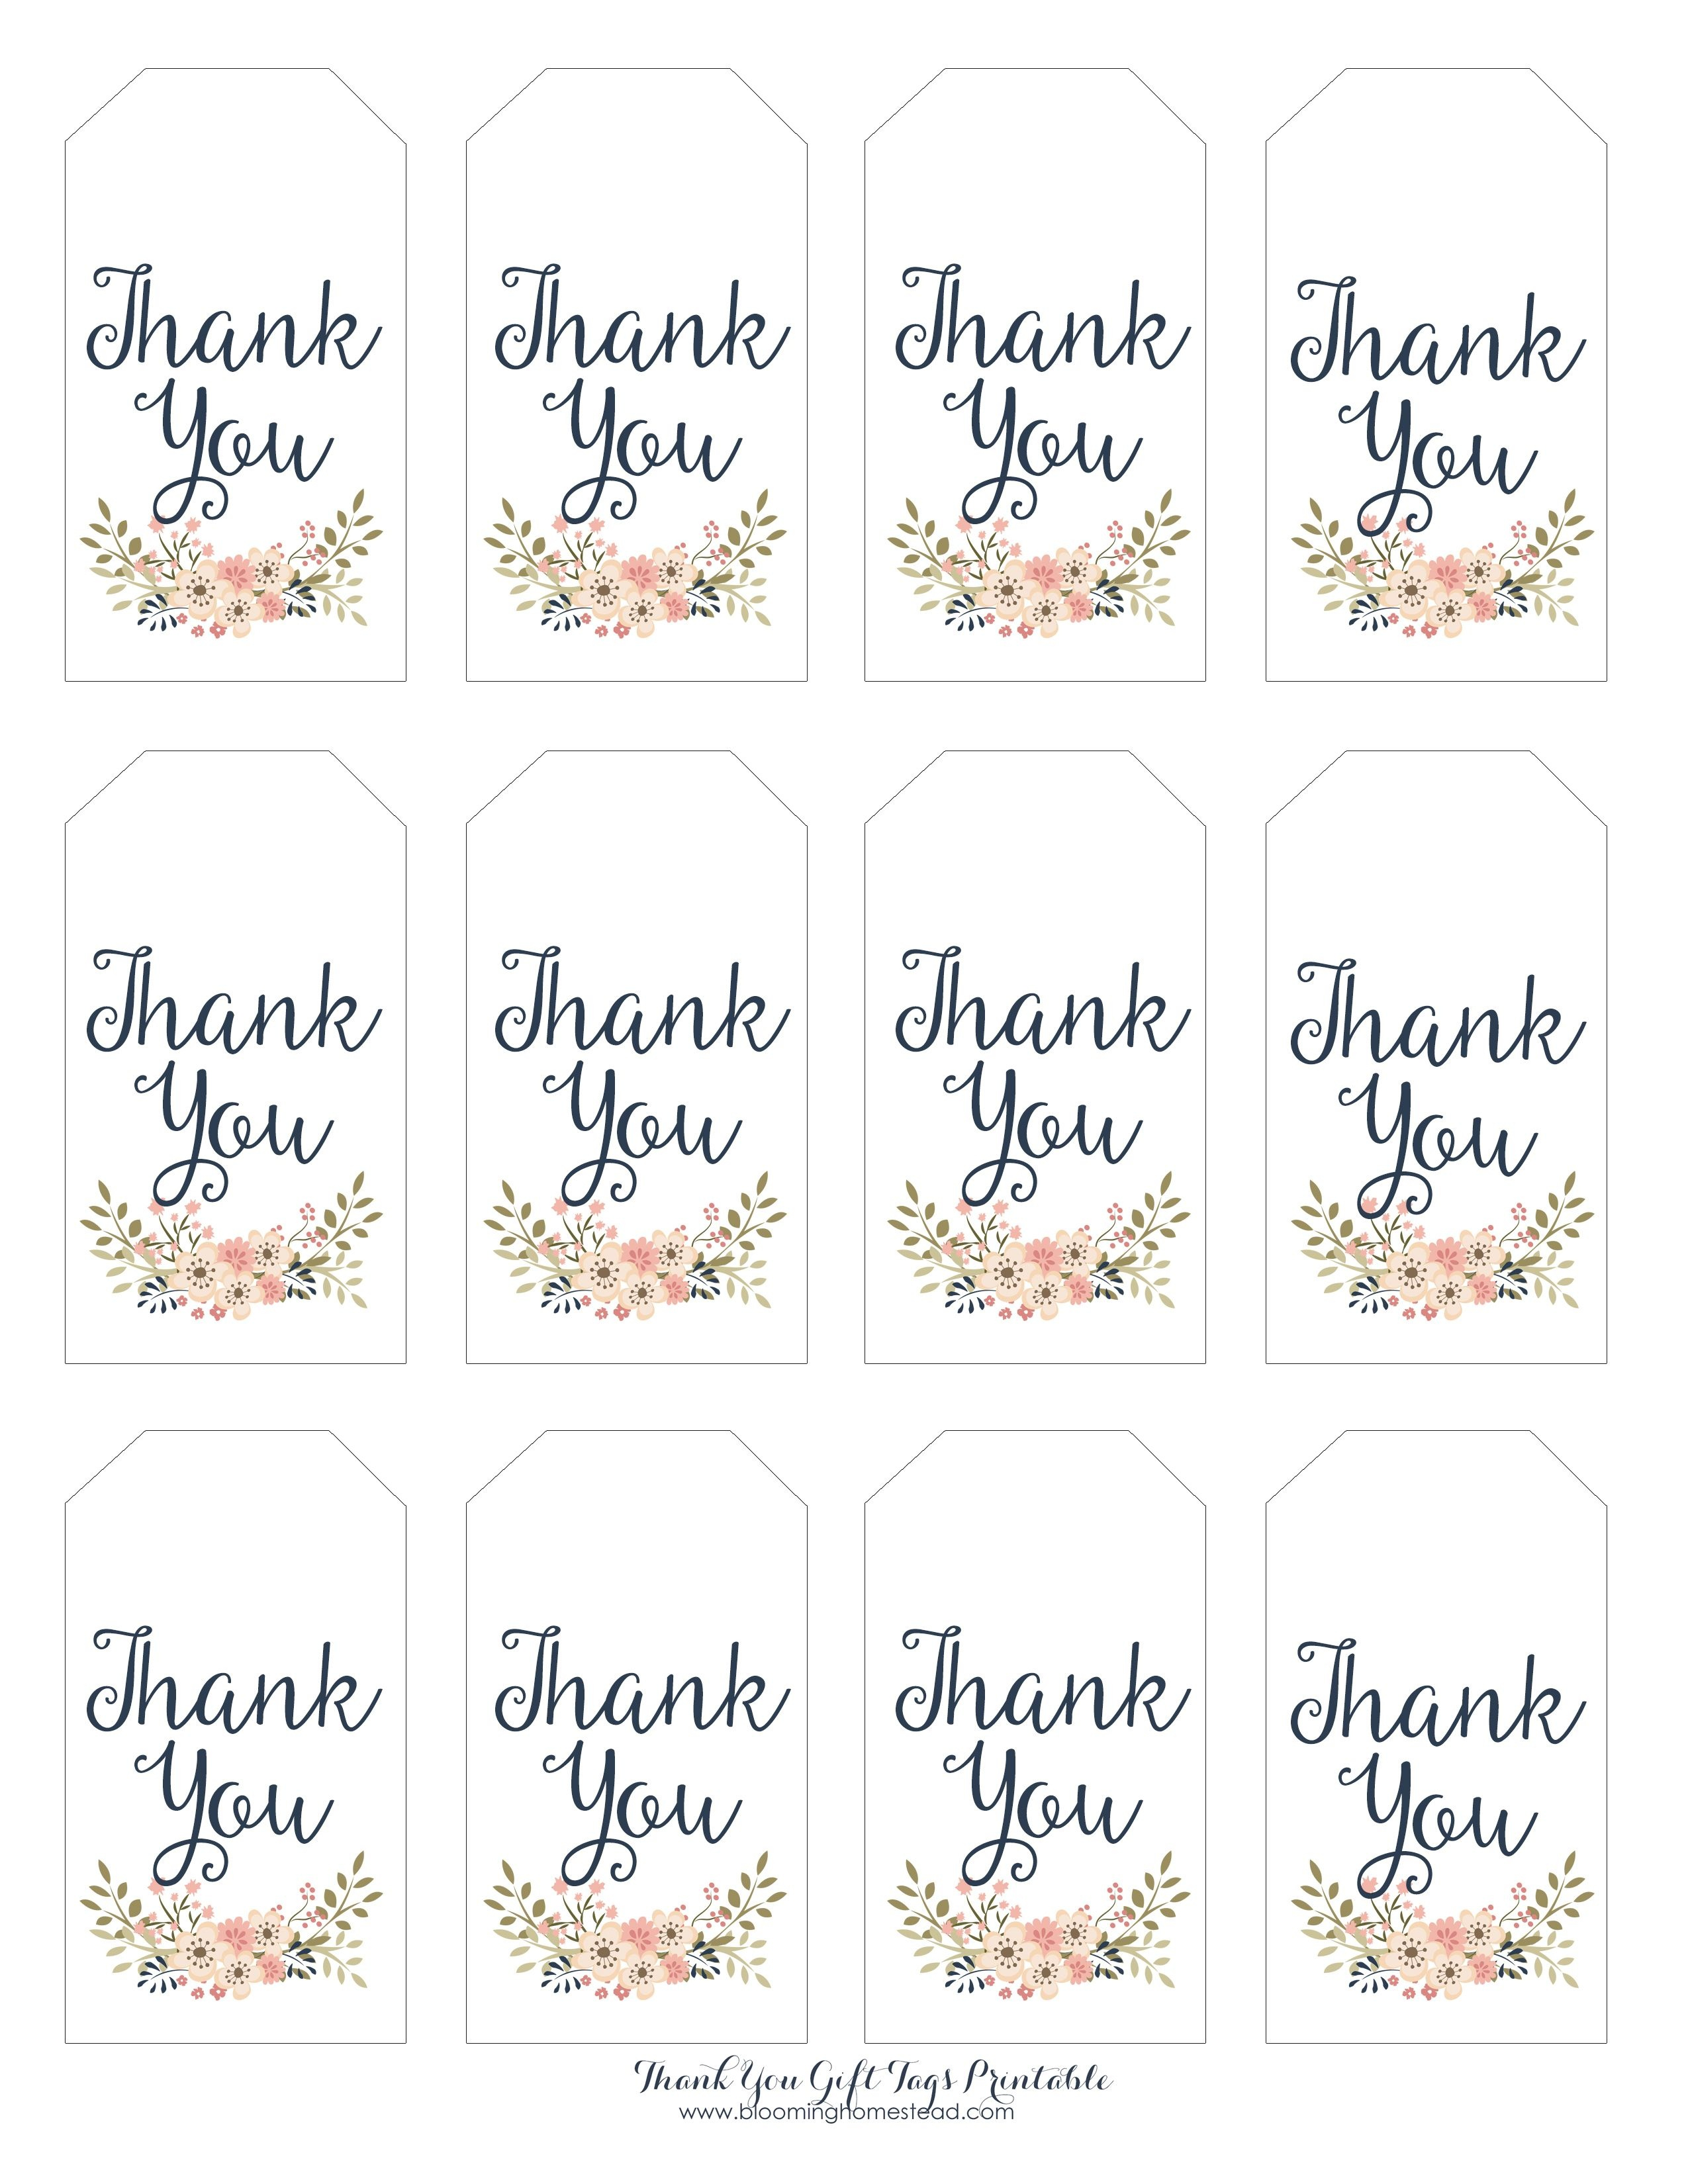 Thank You Gift Tags | Gift Ideas | Thank You Tag Printable - Free Printable Wedding Thank You Tags